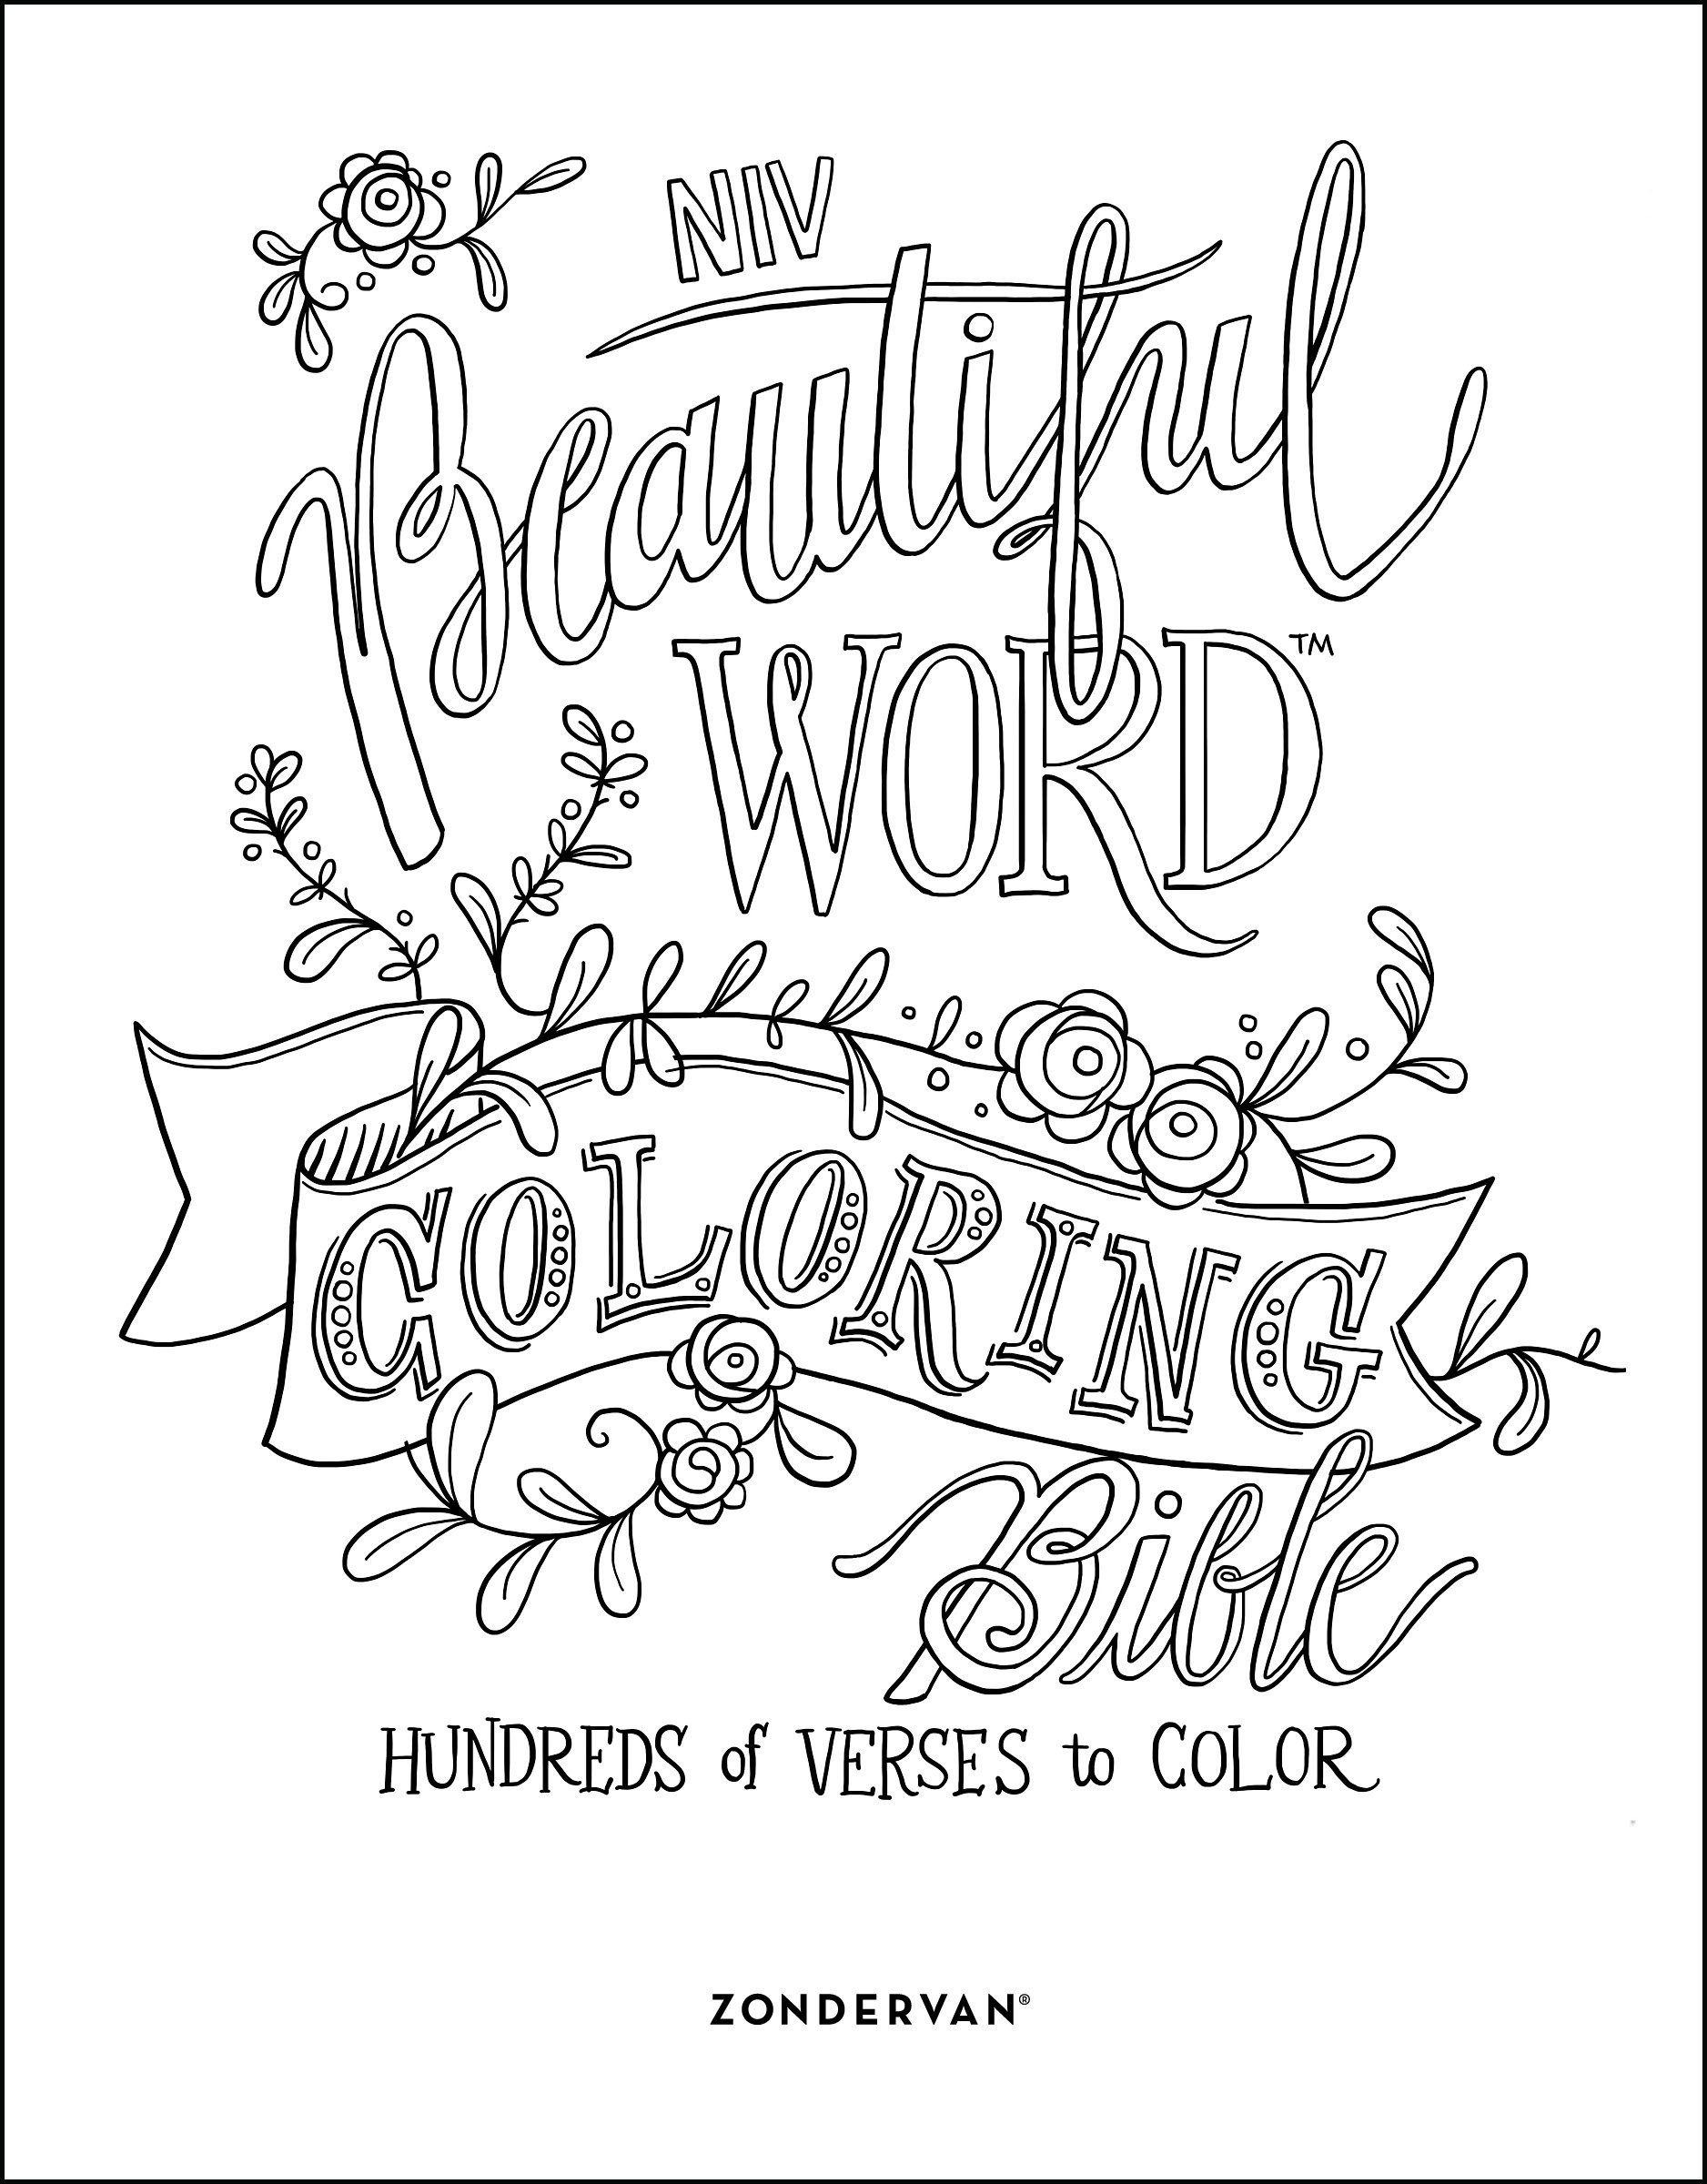 niv beautiful word coloring bible hardcover hundreds of verses